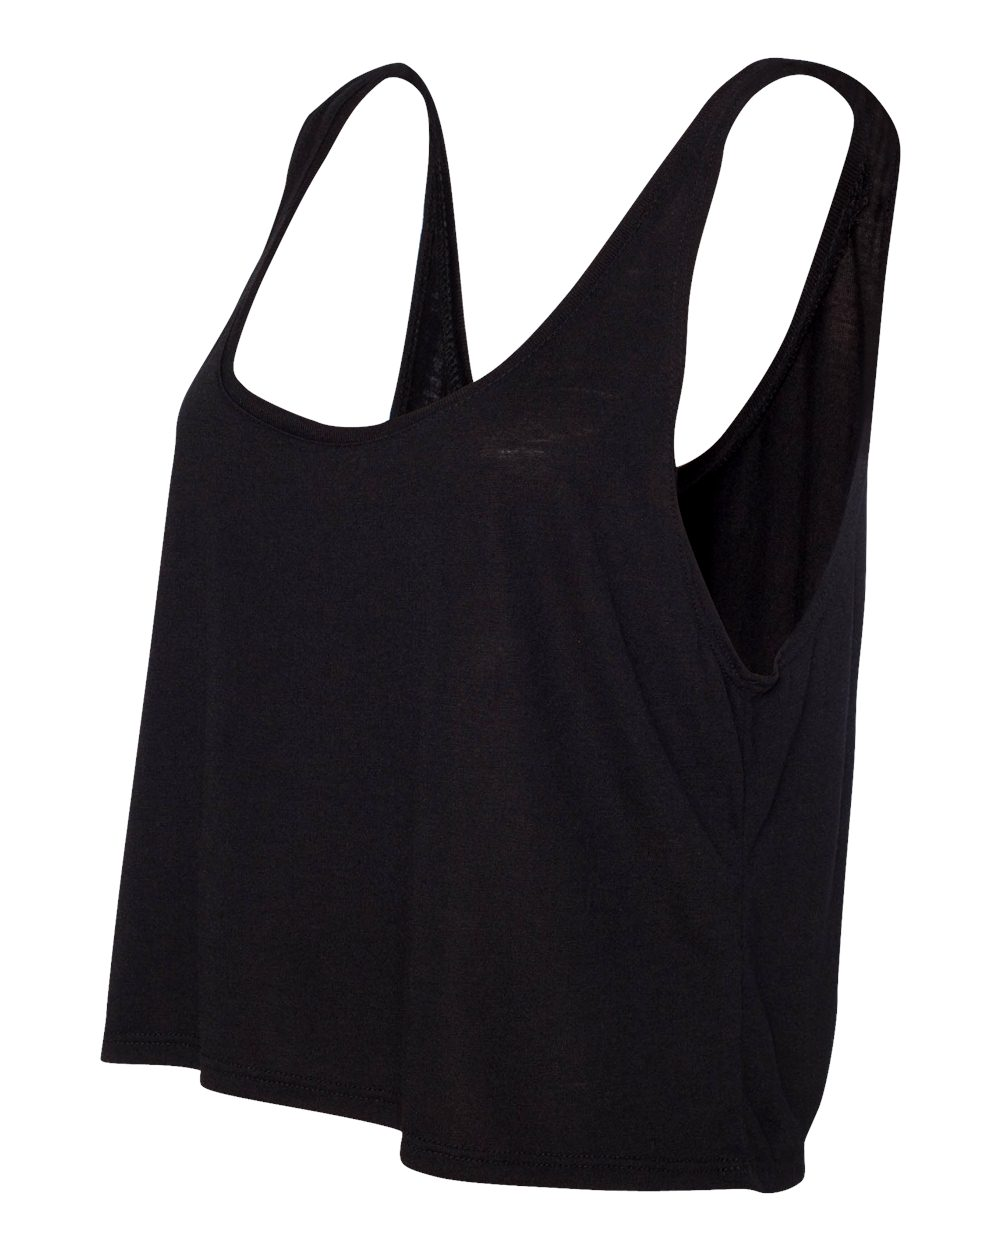 Bella-Canvas-Women-039-s-Flowy-Boxy-Tank-8880-S-XL thumbnail 12